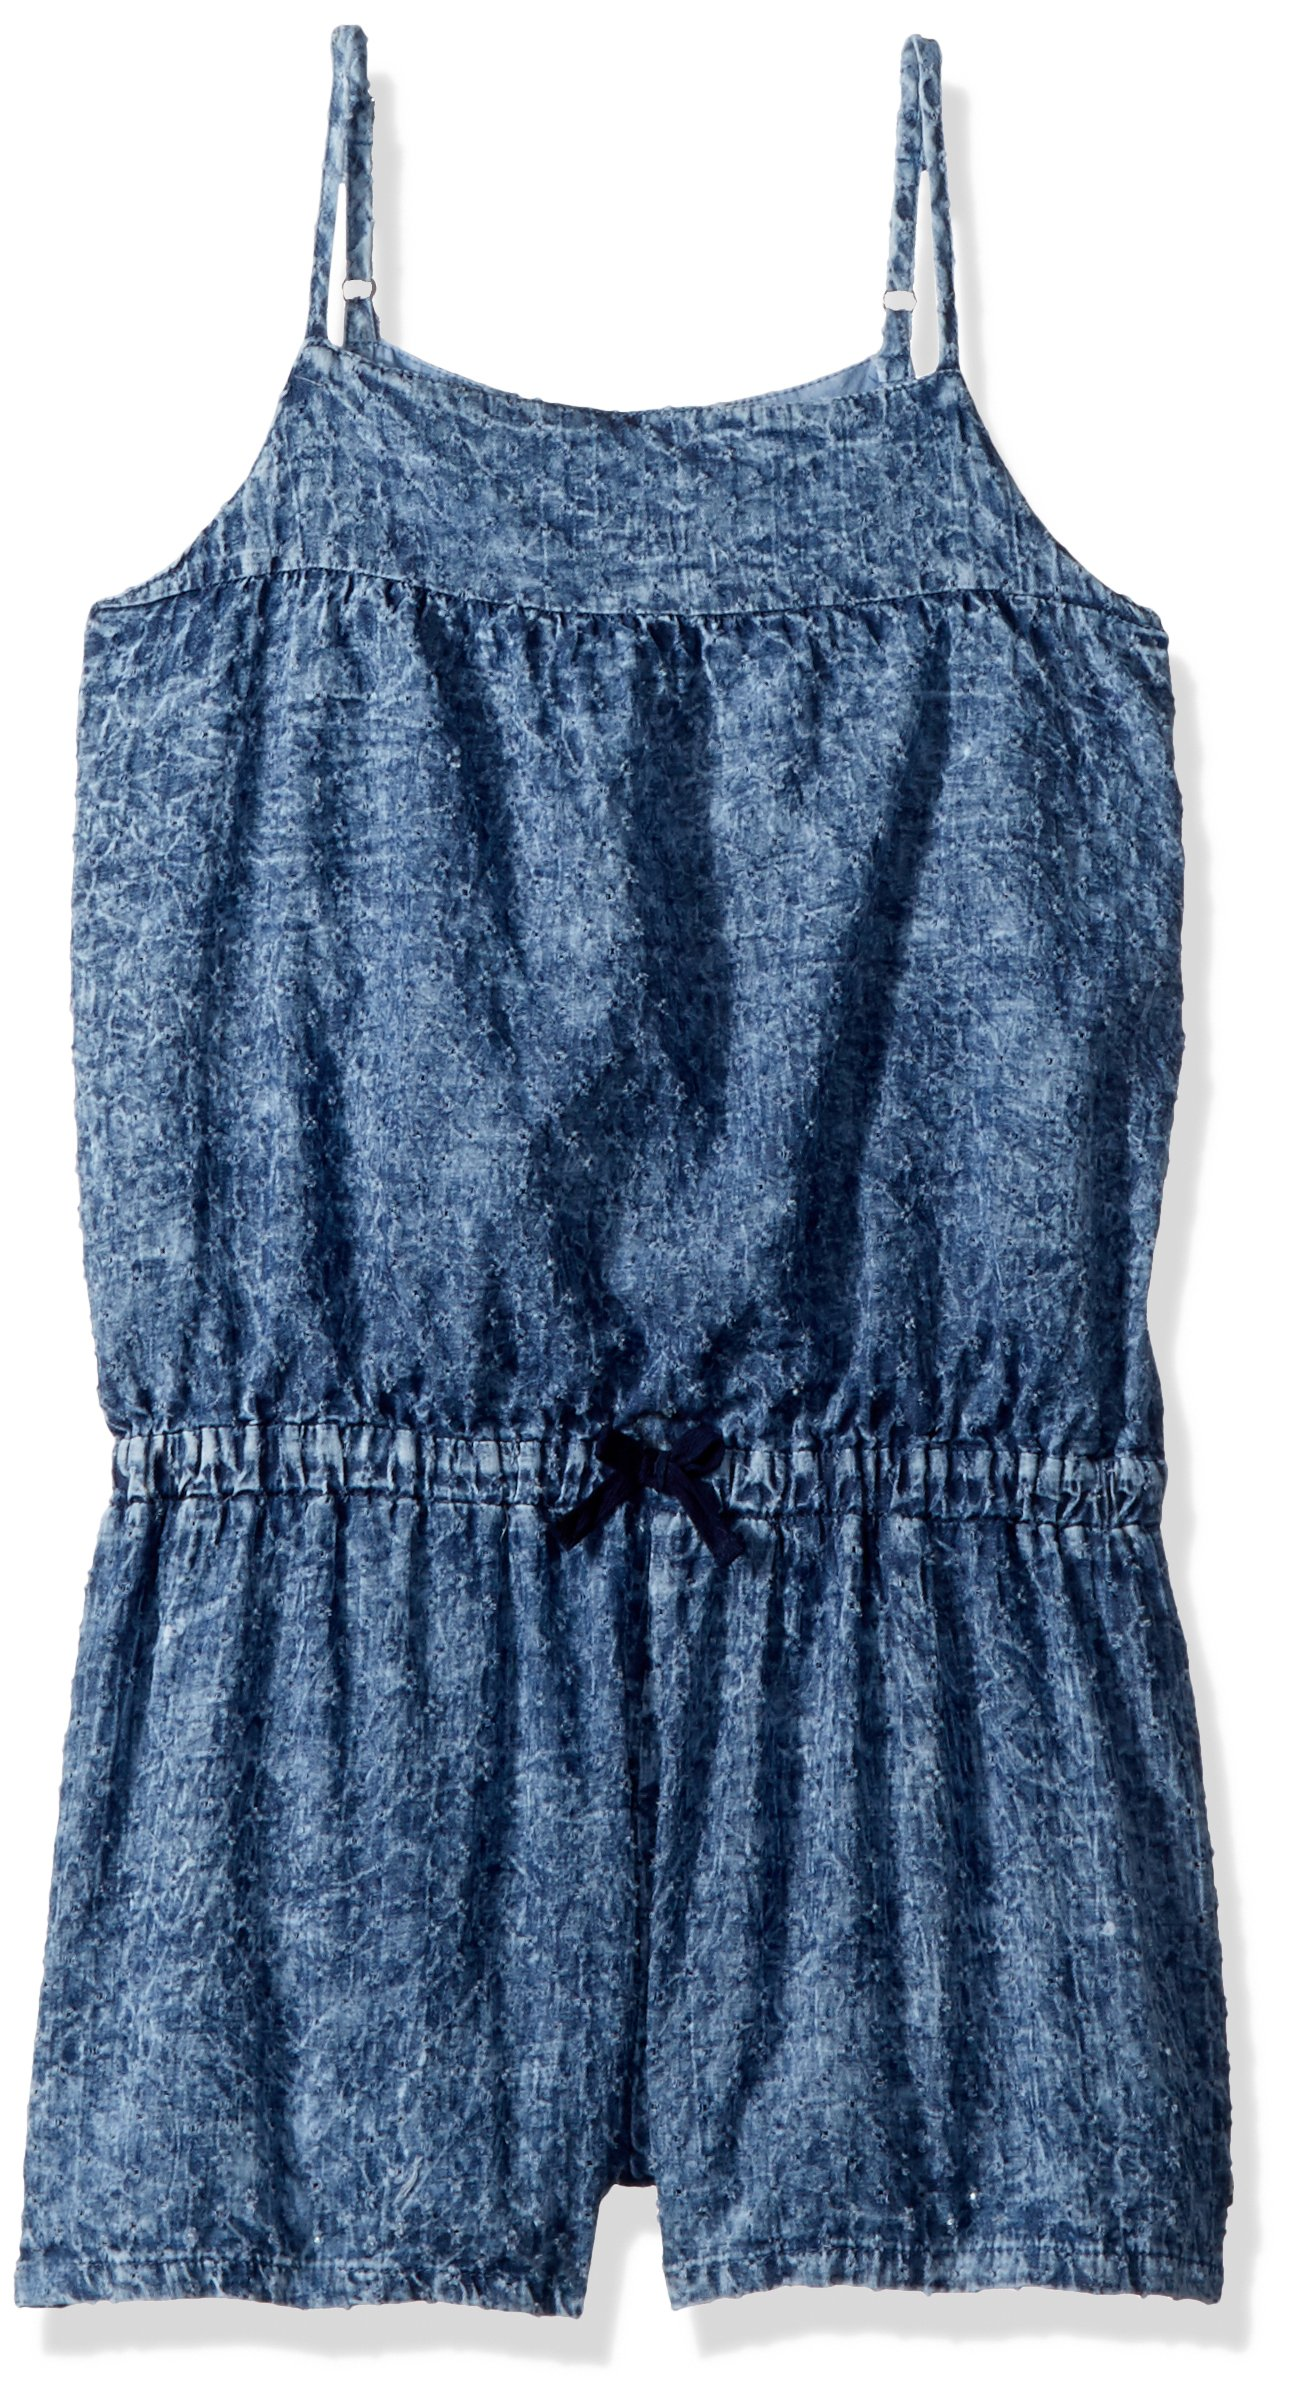 Lucky Brand Big Girls' Romper, Ryder Wash Daylan, Large (12/14)